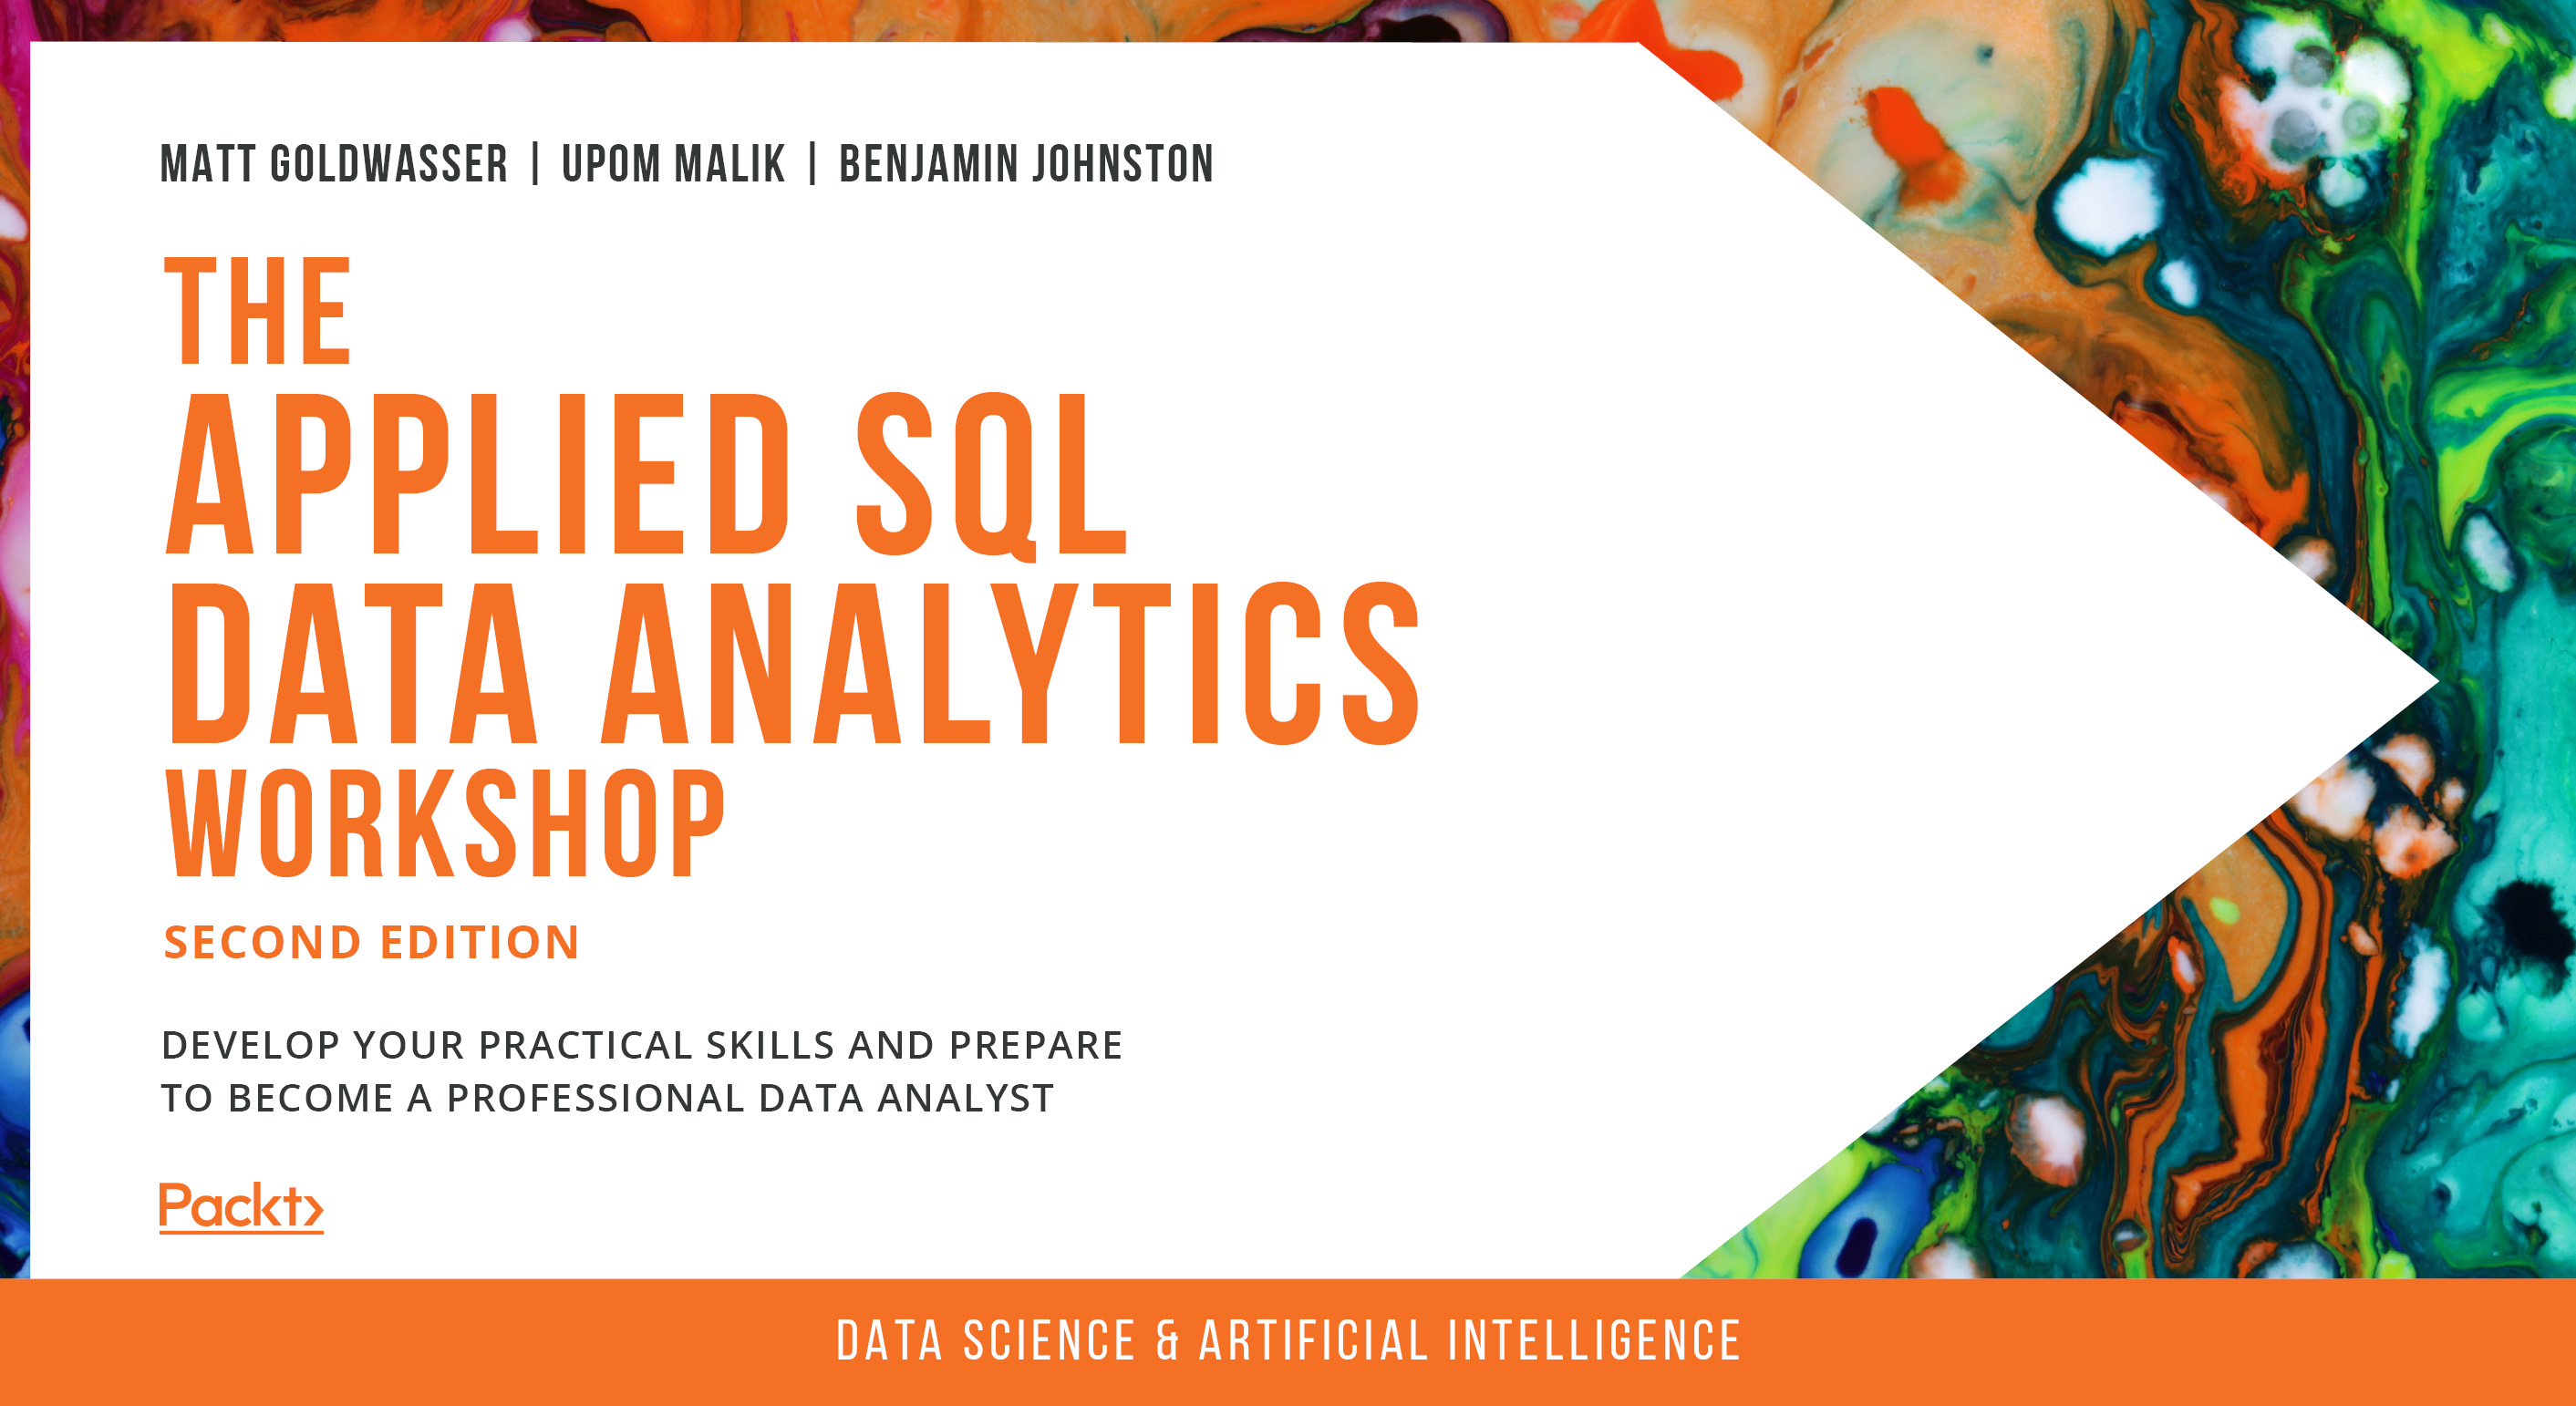 The Applied SQL Data Analytics Workshop - Second Edition